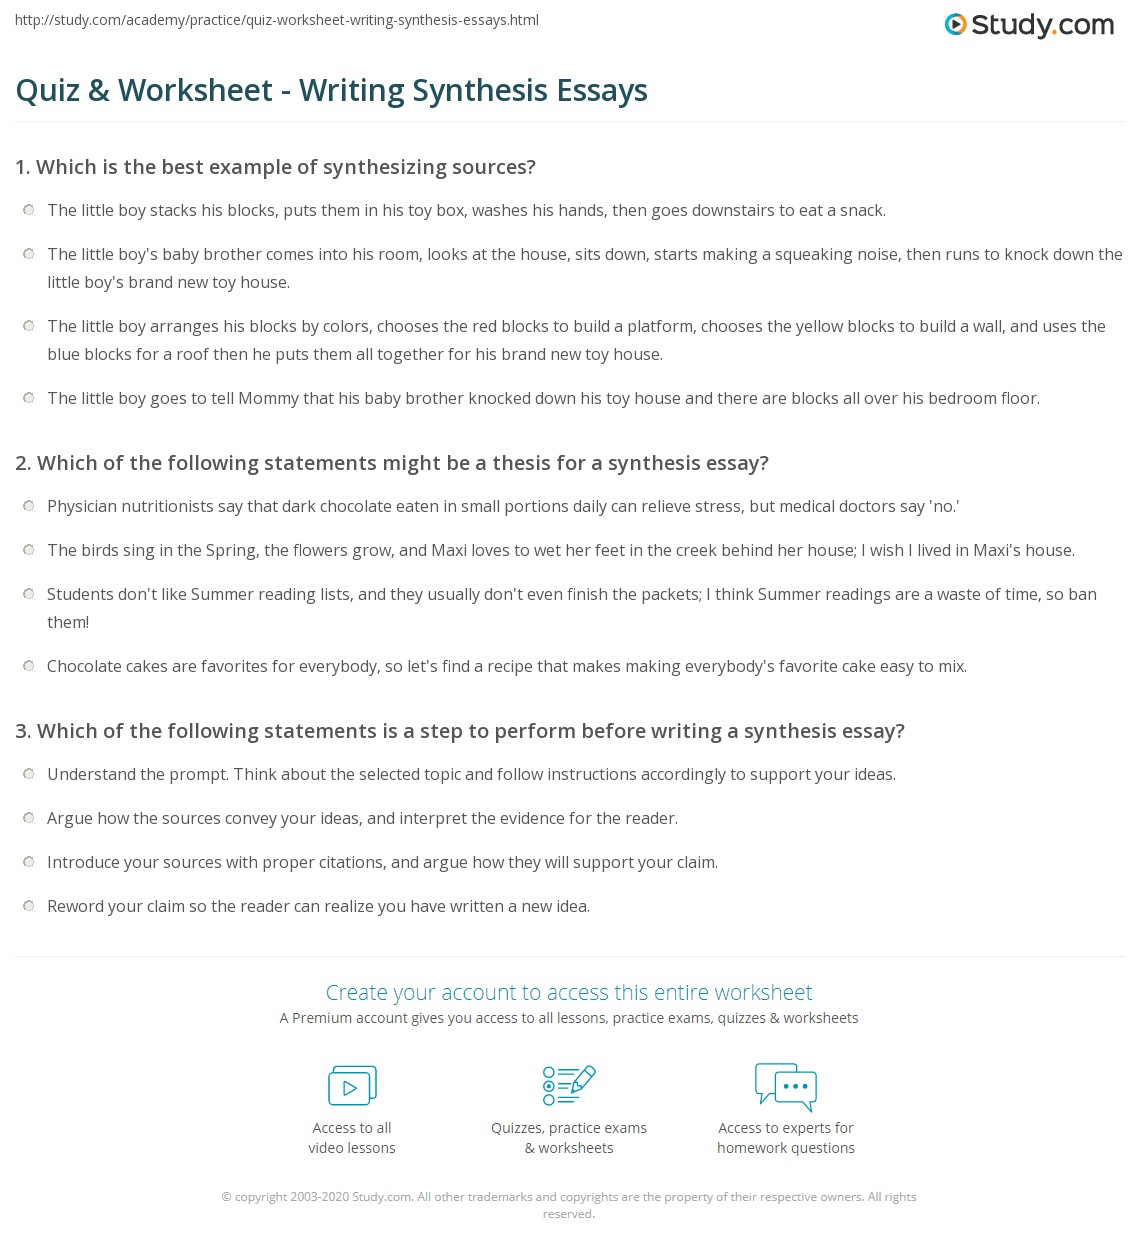 sample of synthesis essay an additional sample synthesis essay how to write reflective essays how to write reflective school english reflective essay english reflective essay